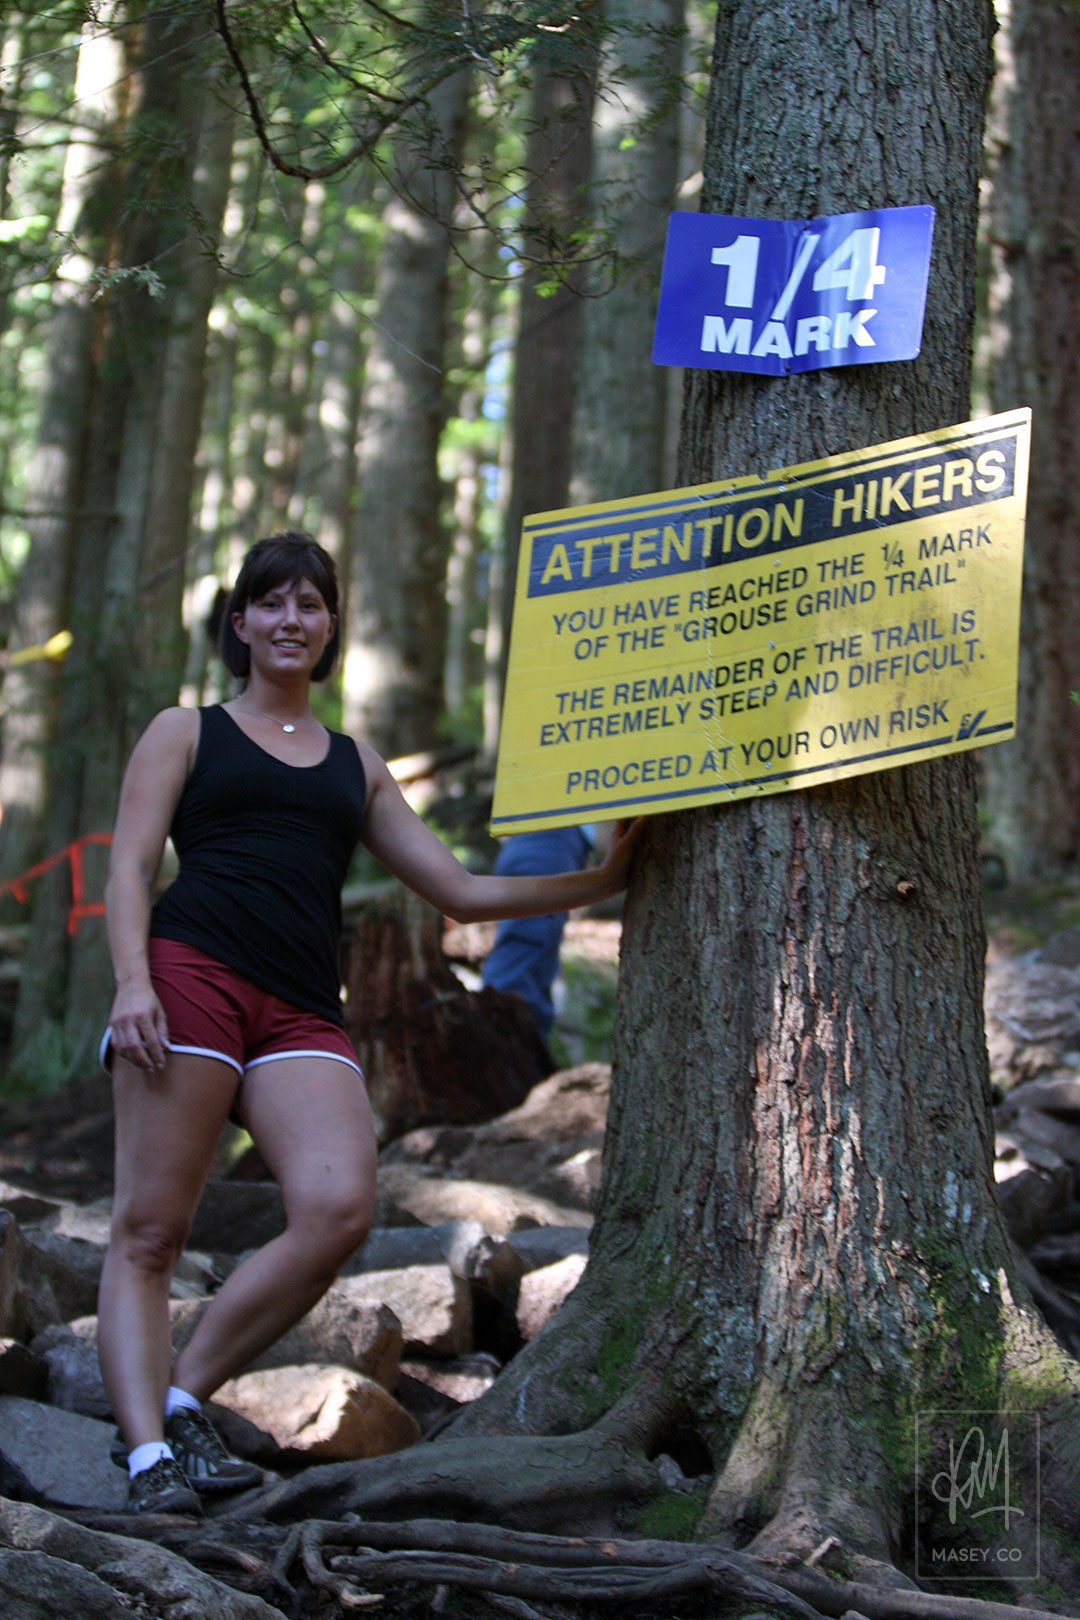 At the 1/4 mark of the Grouse Grind